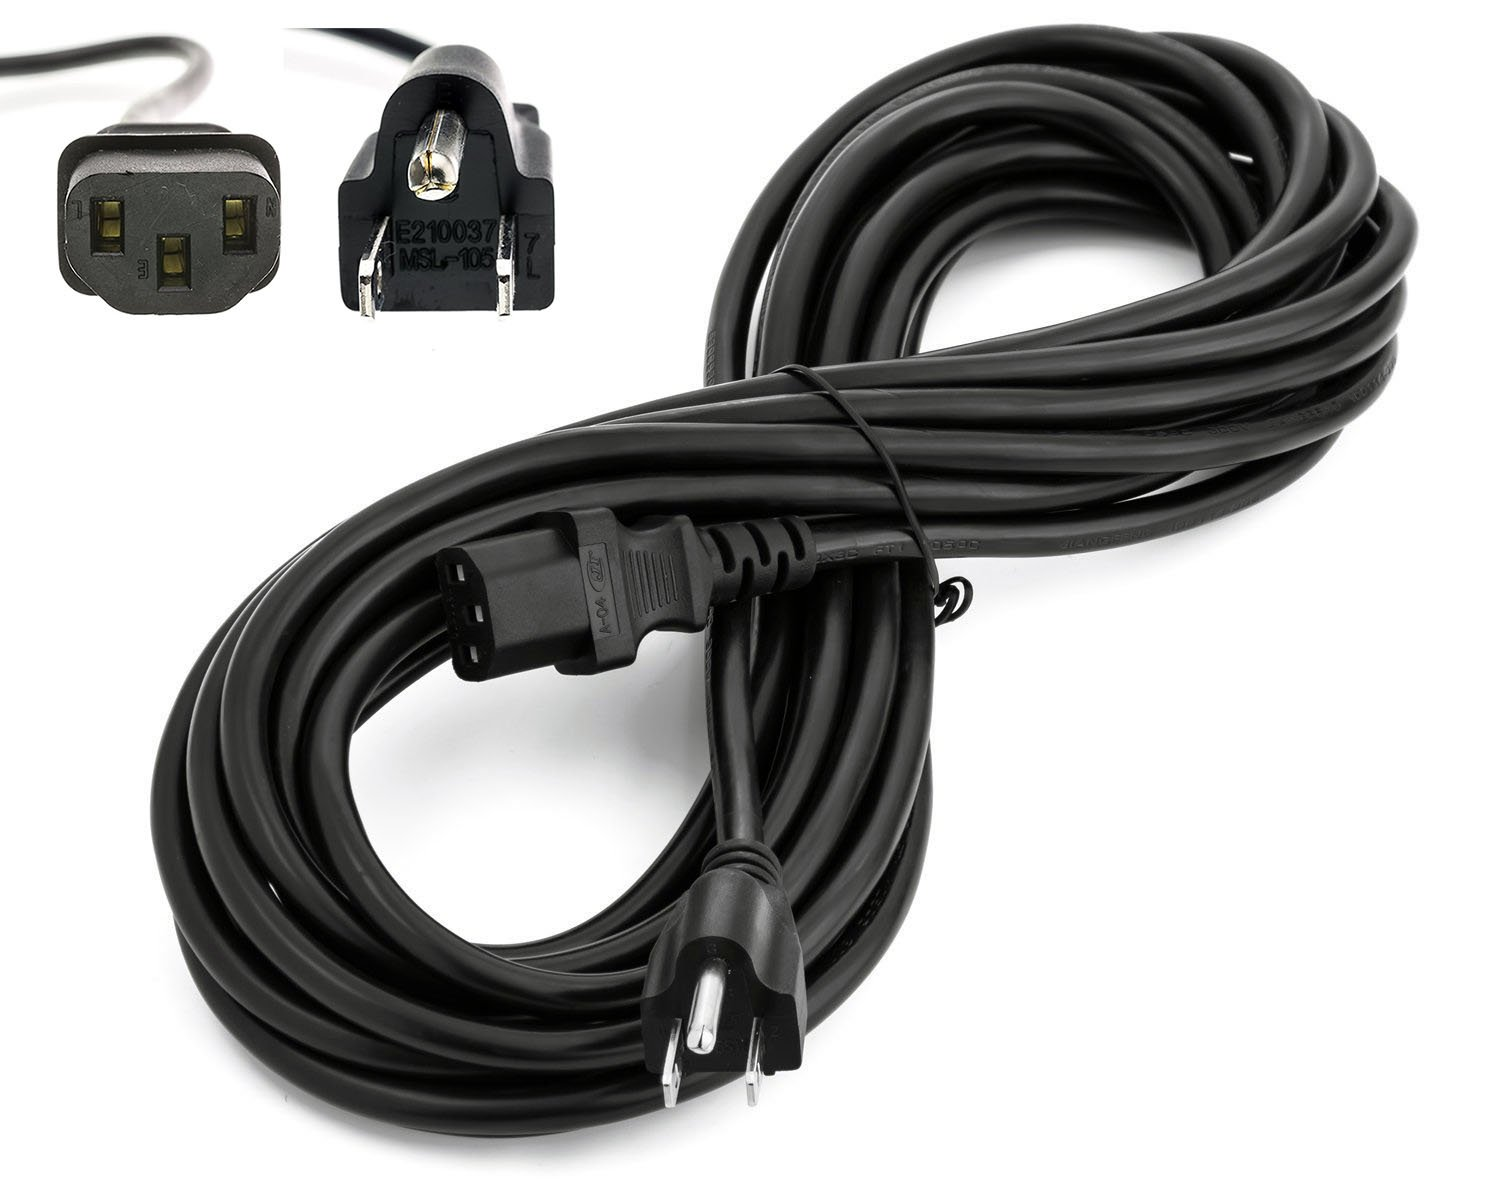 Amamax 25 Feet Extra Long AC Power Cord Cable for Vizio TV 3 Prong (NEMA 5-15P to IEC 60320C13) - UL Listed